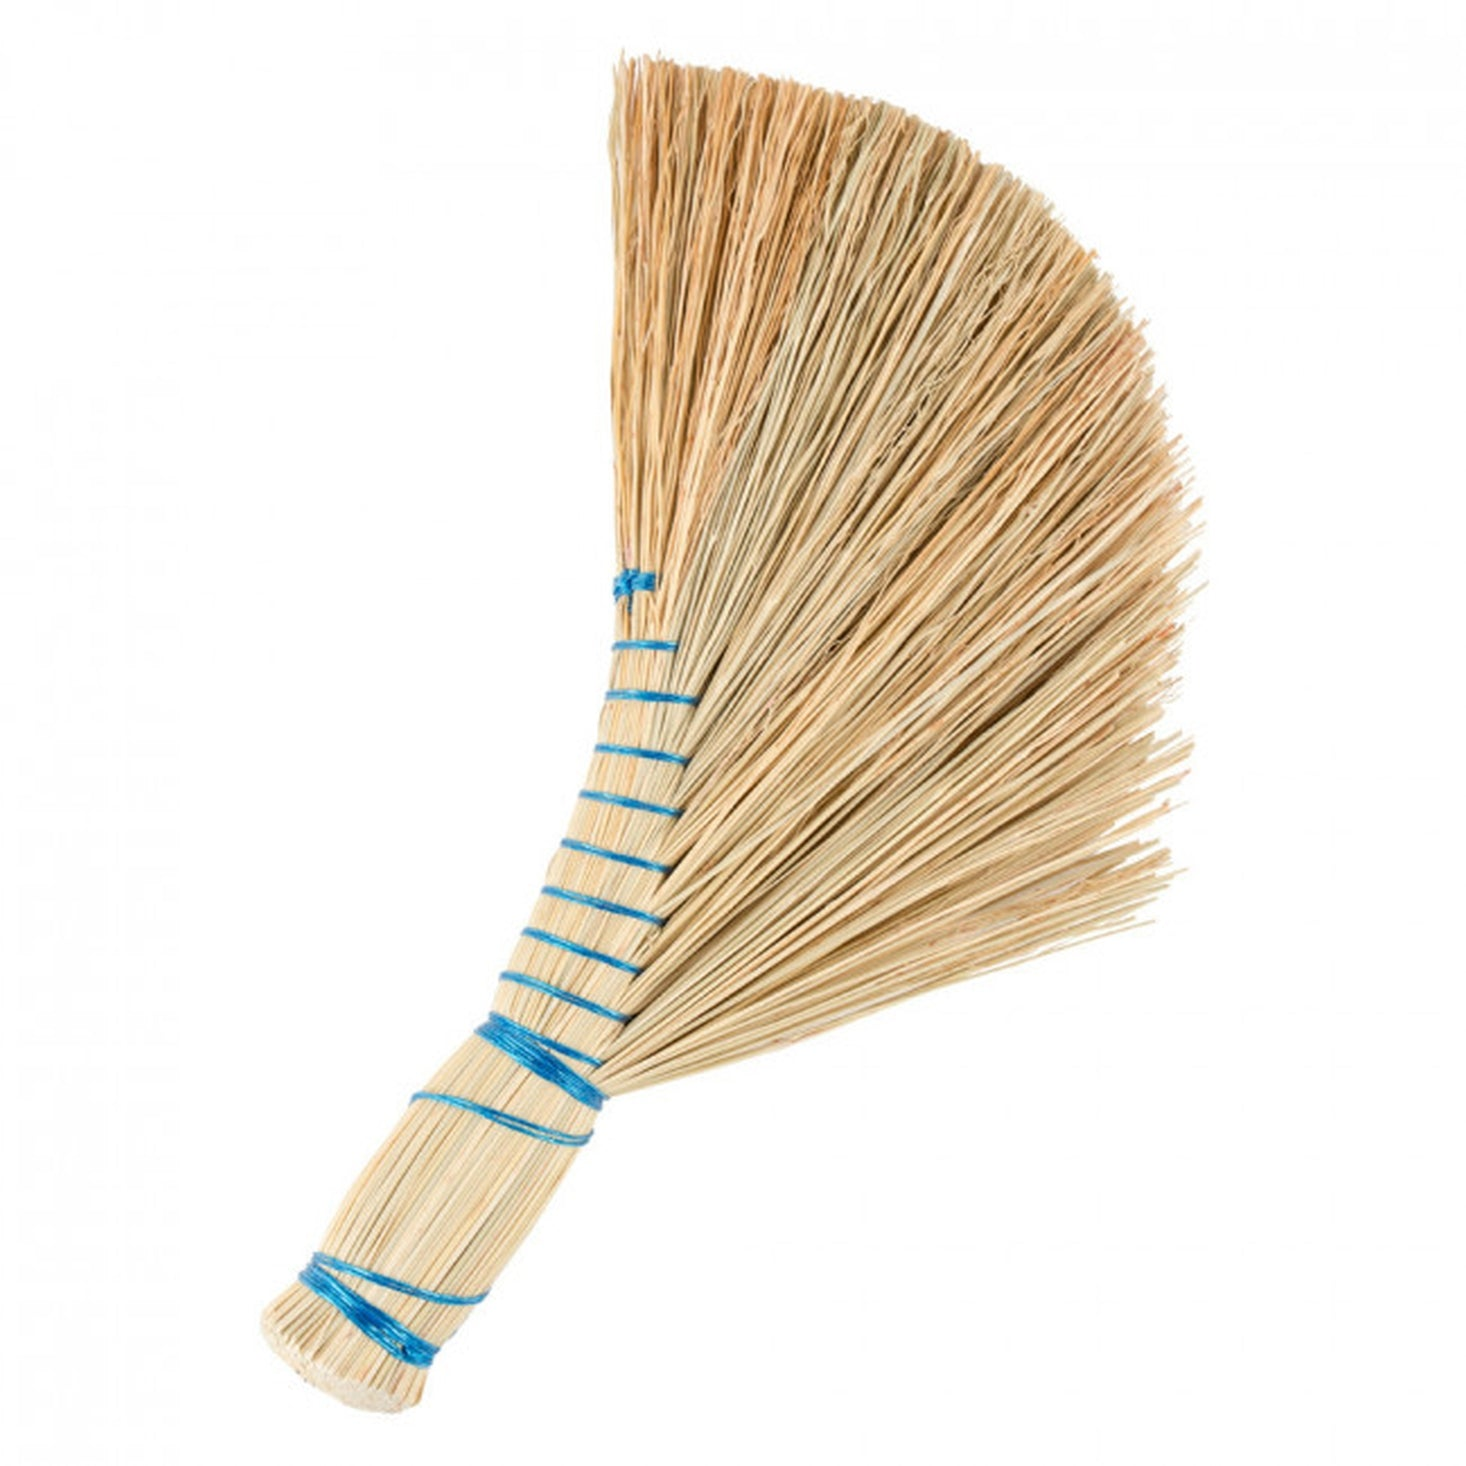 Dutch Hand Brush